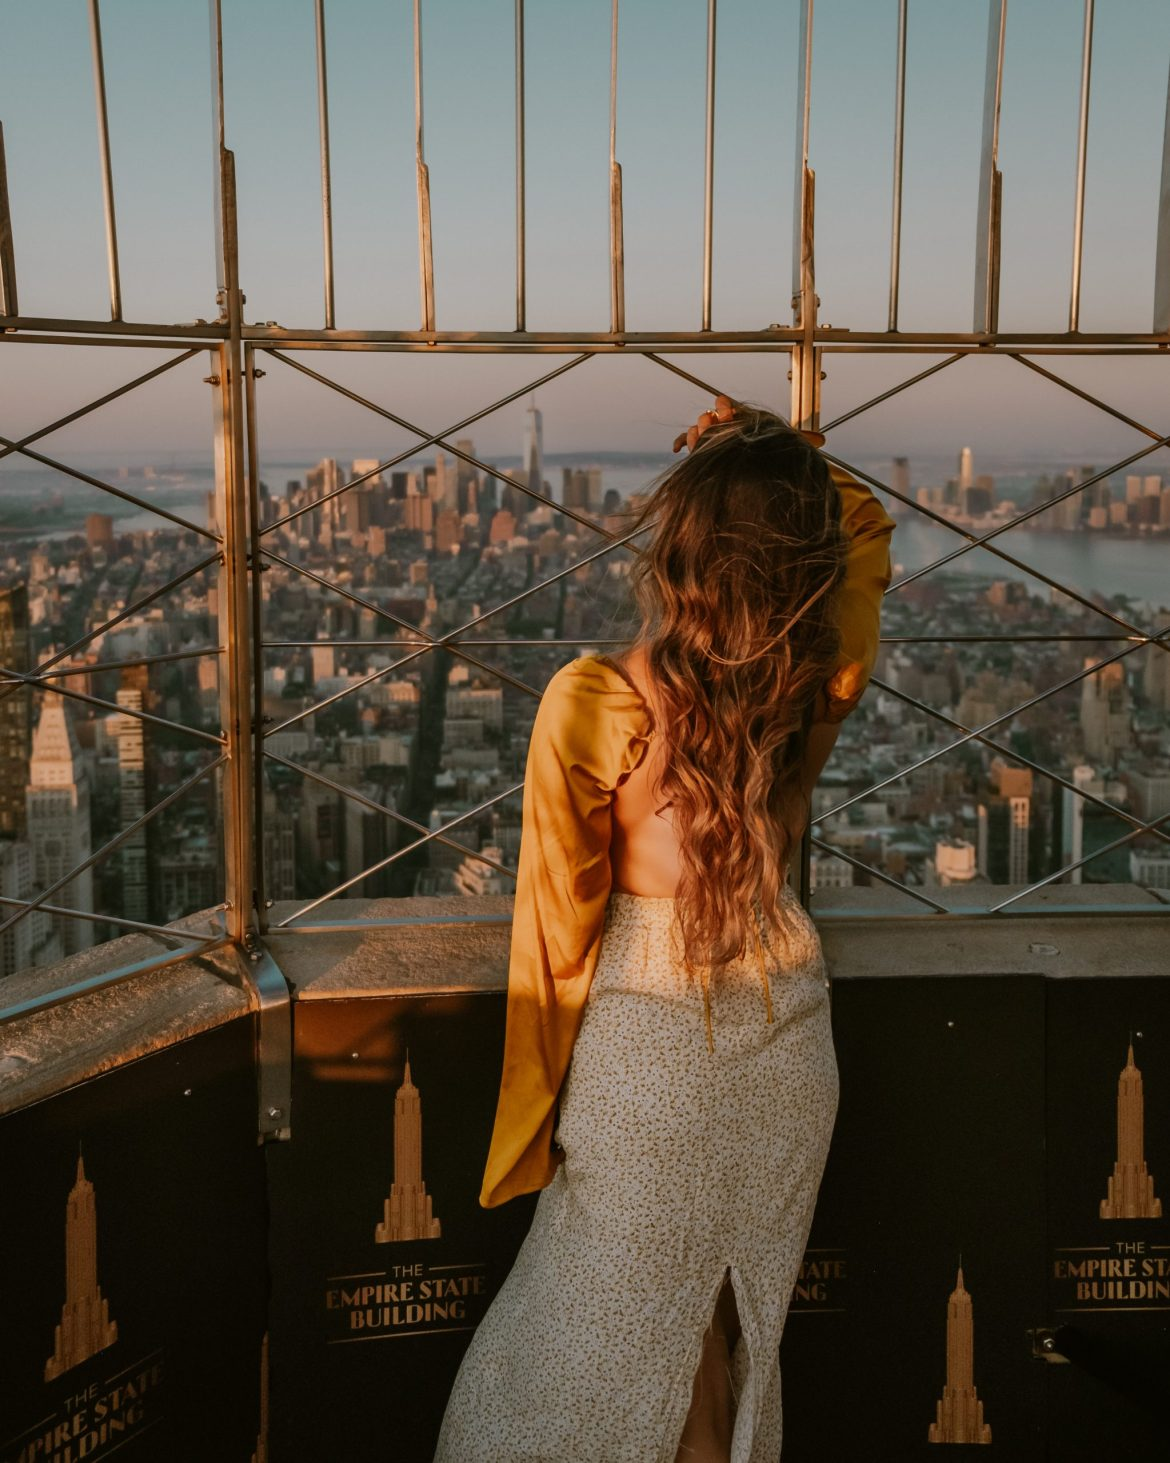 Empire State Building Photoshoot